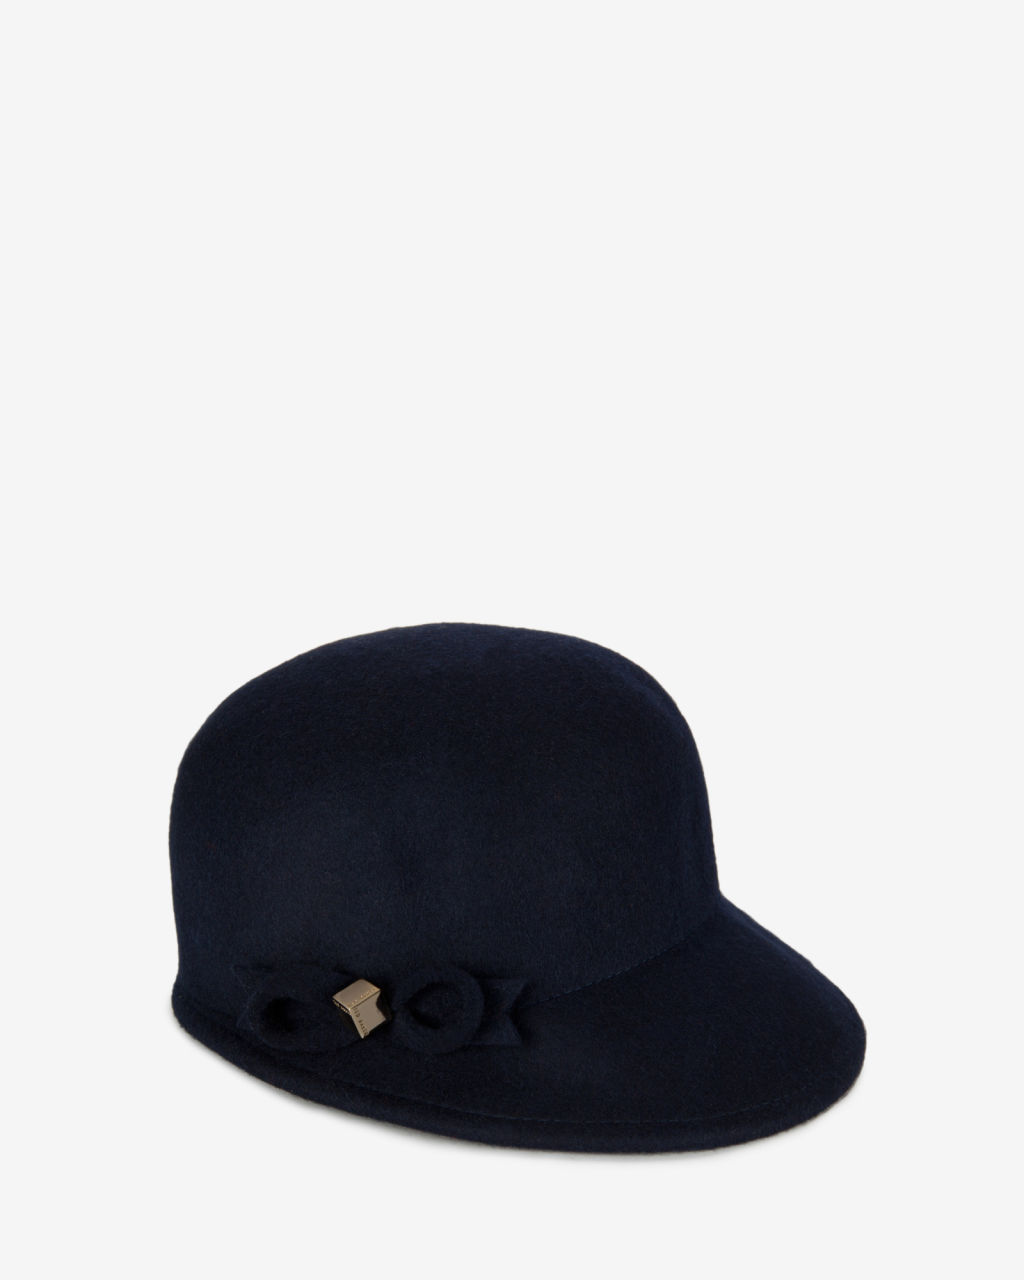 us-Womens-Accessories-Hats-BENA-Bow-detail-felt-cap-Navy-XA5W_BENA_10-NAVY_1.jpg.jpg